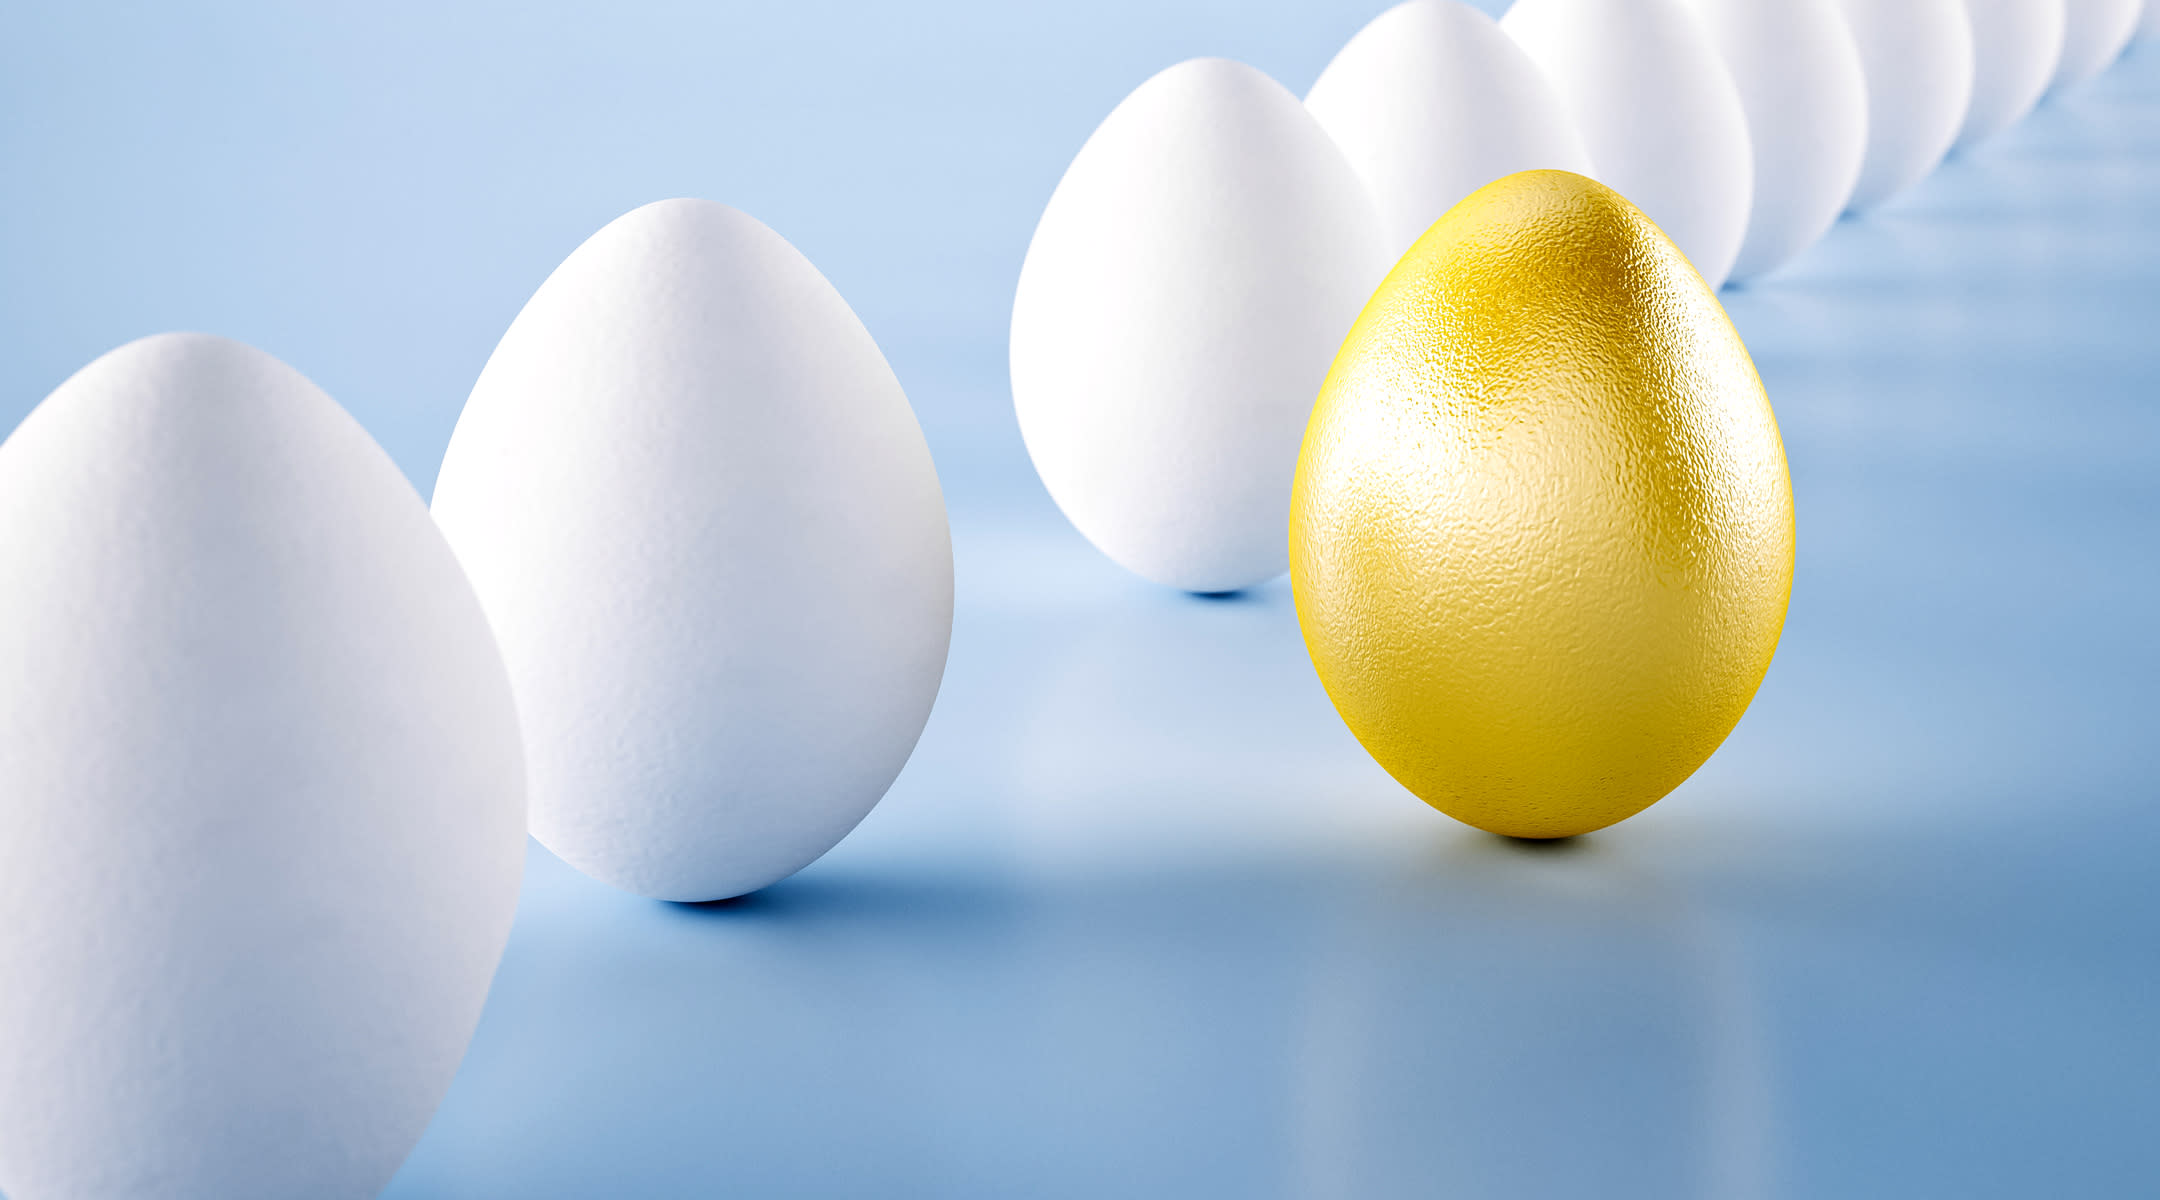 Eggs in repeating alignment with gold colored egg at the front of the frame.